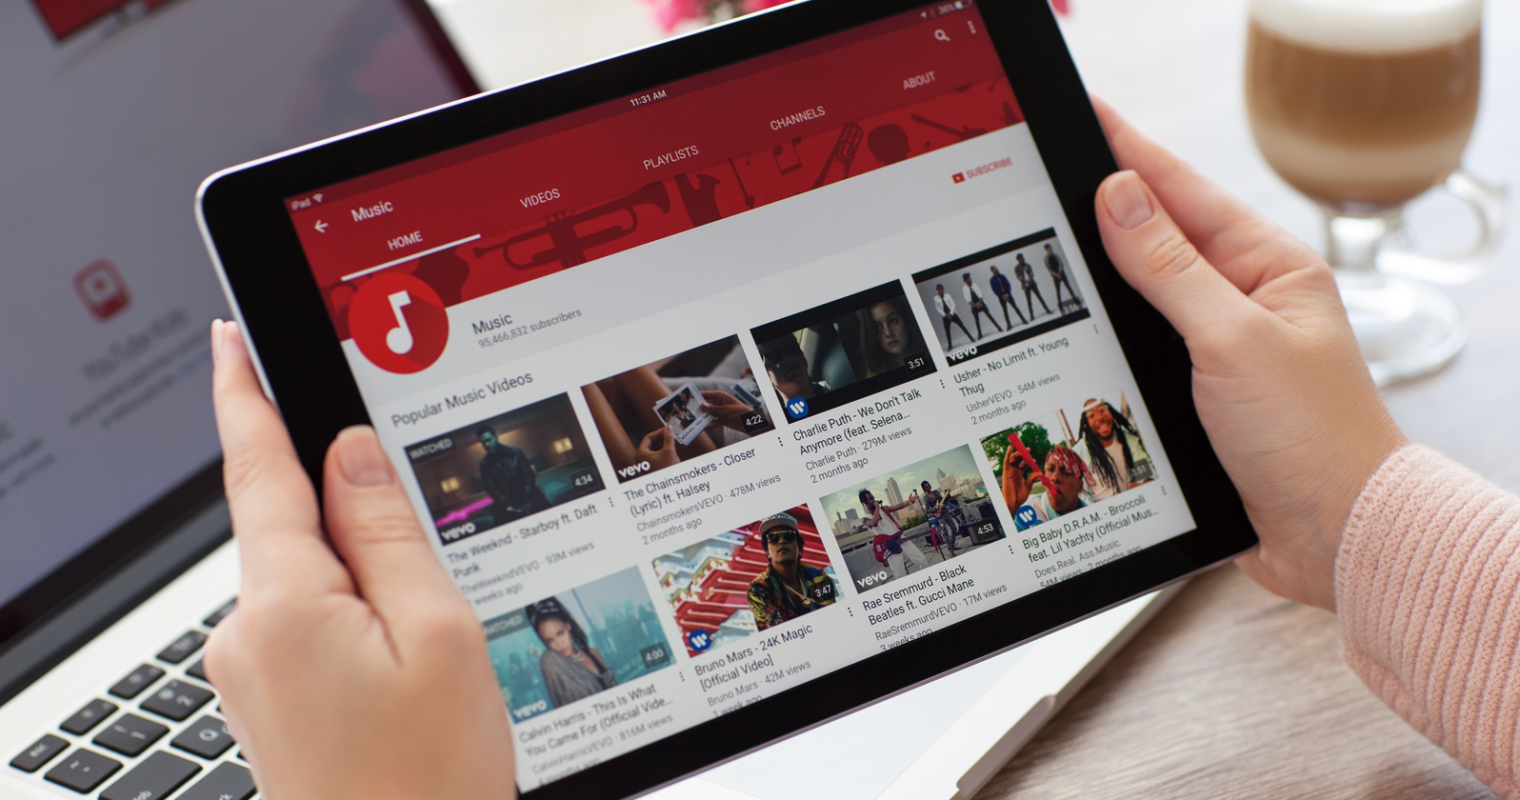 YouTube Continues Testing Immersive Product Experiences